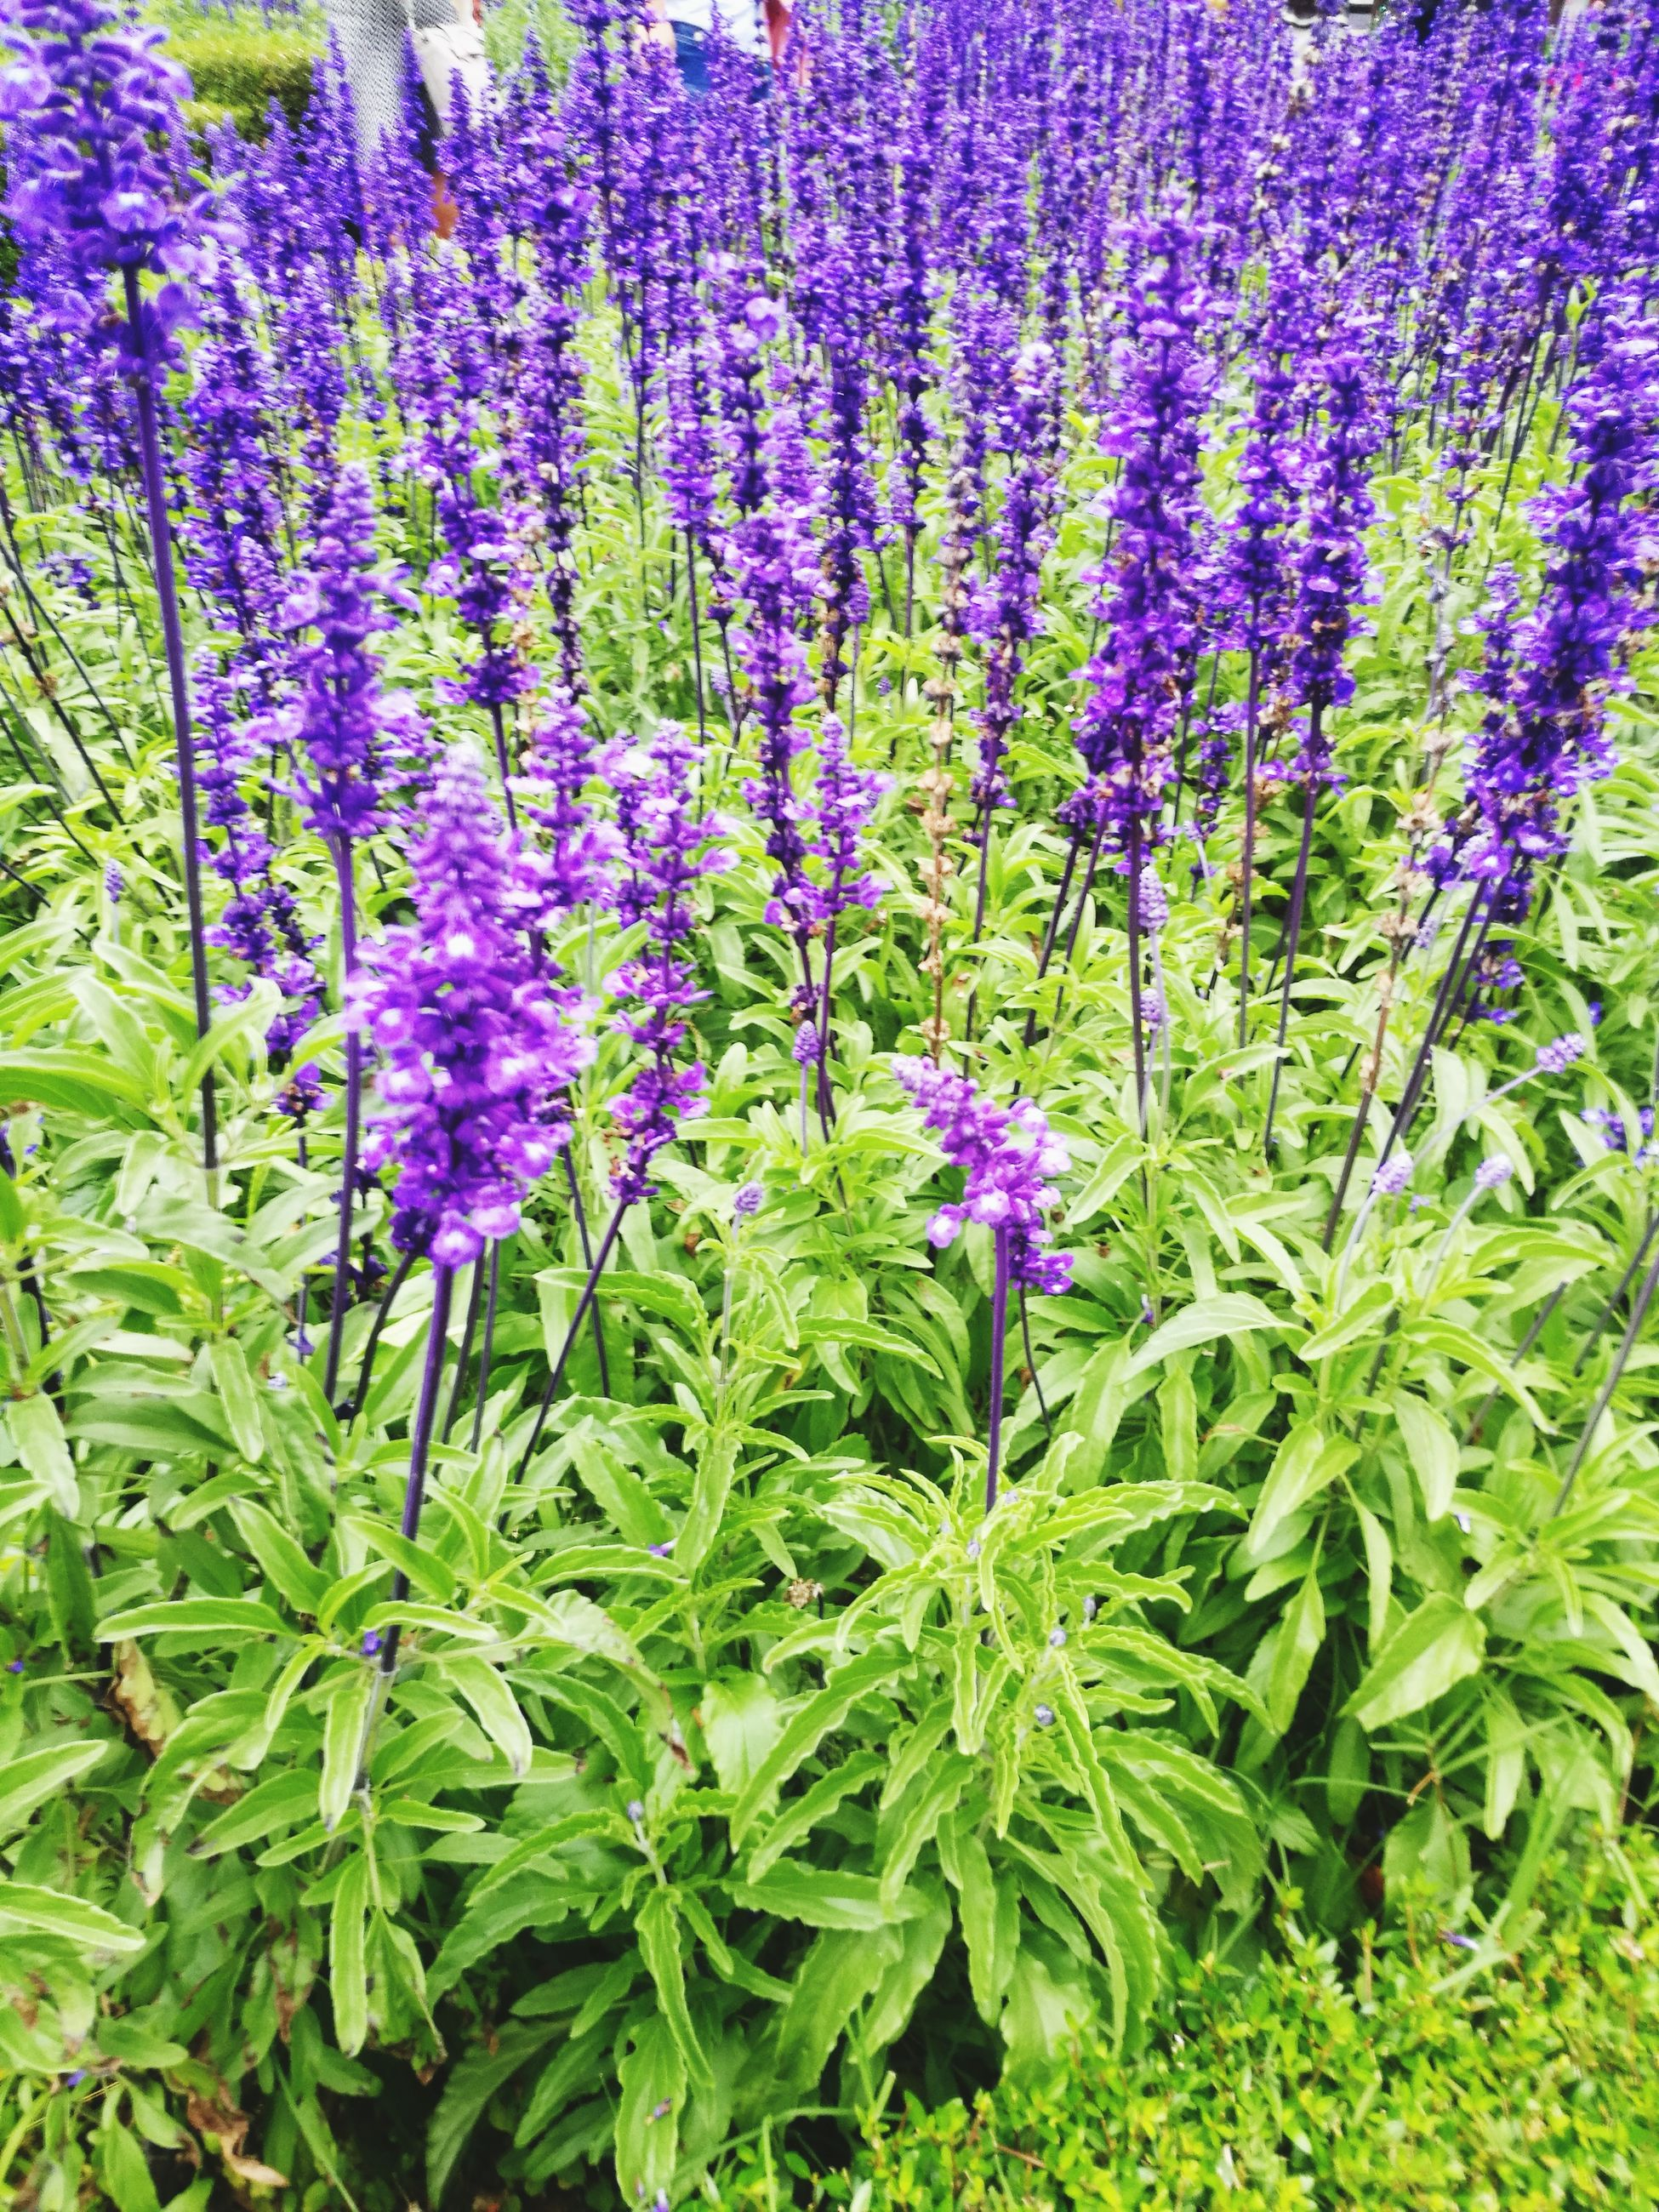 purple, flower, nature, growth, plant, beauty in nature, green color, lavender, no people, leaf, herb, scented, outdoors, freshness, fragility, day, herbal medicine, close-up, flower head